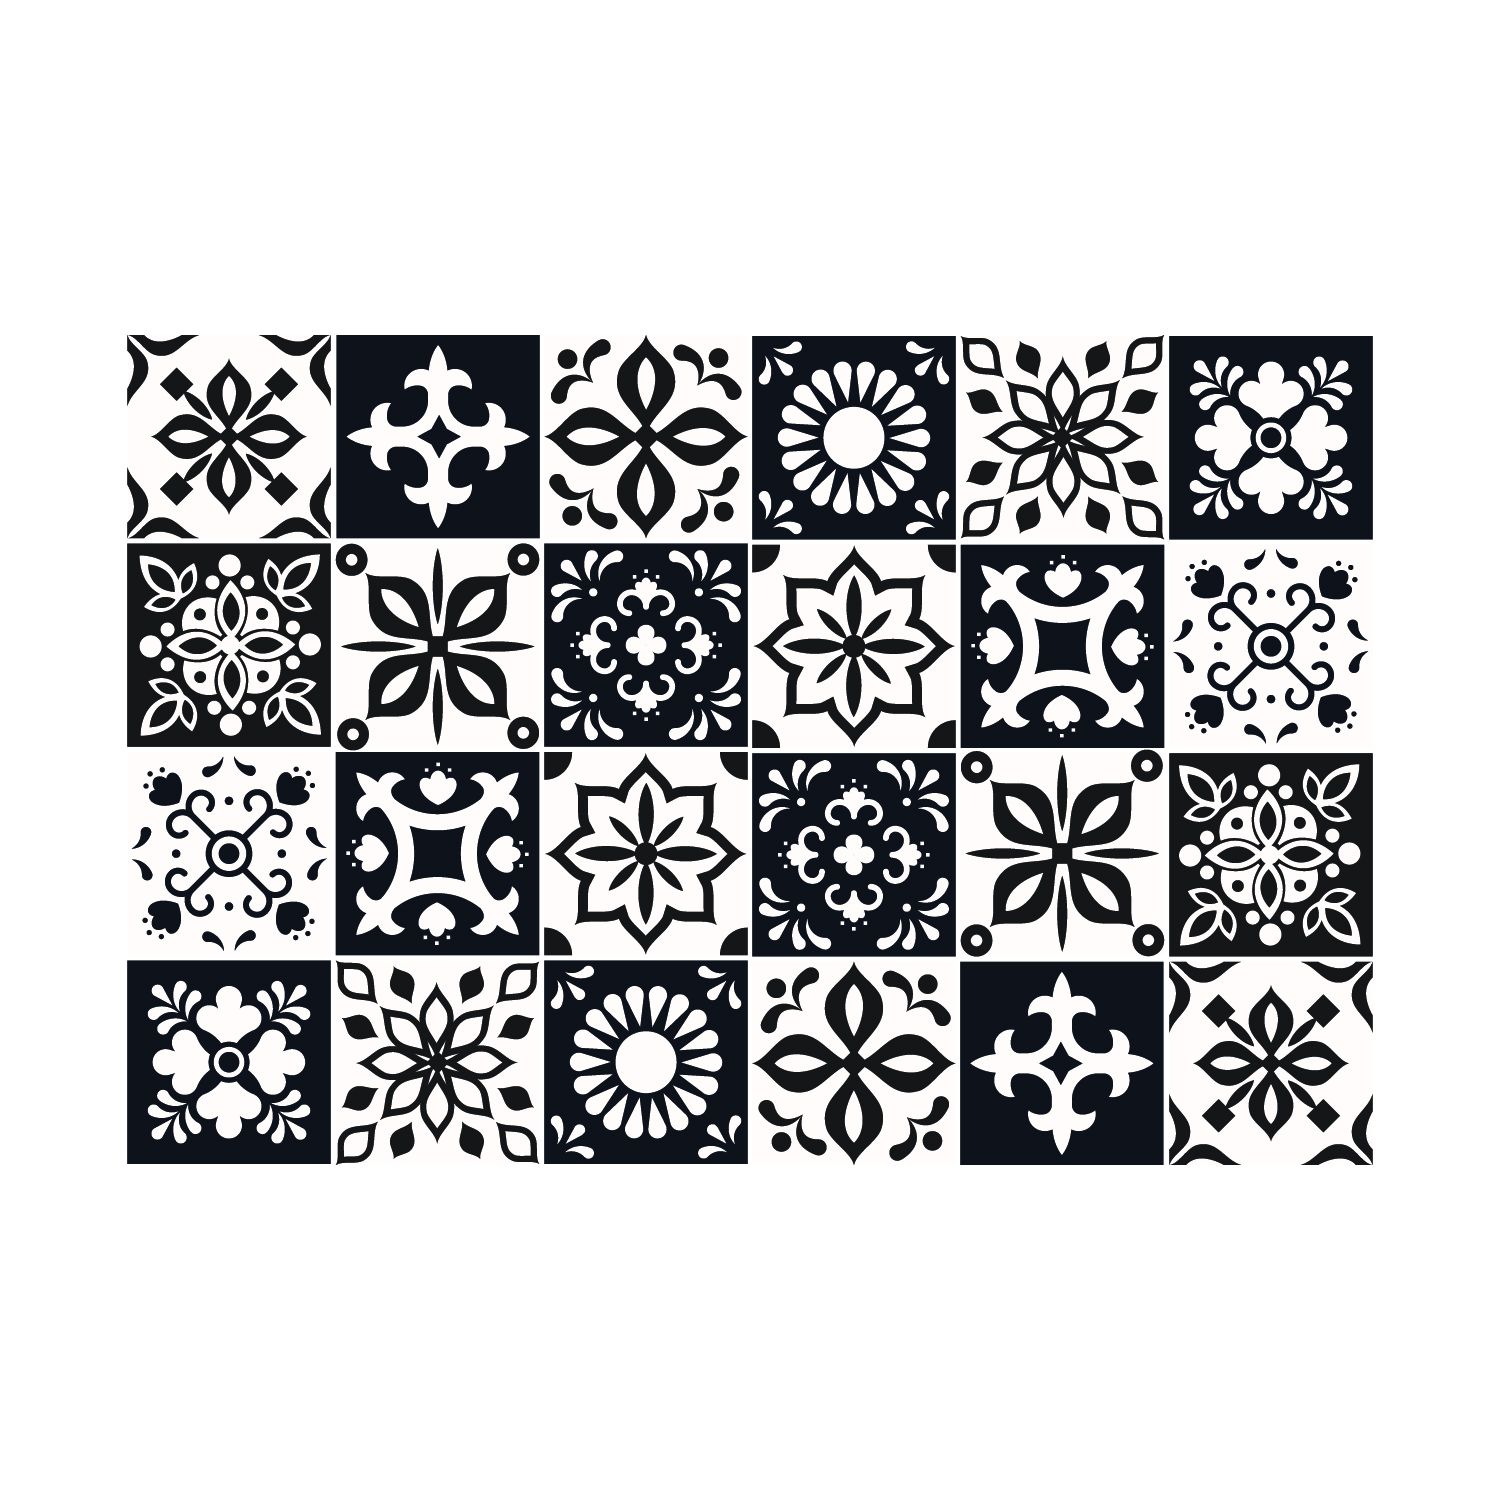 Marjorelle Black and White Moroccan Wall Tile Sticker Set - 15 x 15 cm (6 x 6 in) - 24 pcs, DIY Art, Home Decorations, Decals, Kitchen Decor, Bathroom Ideas